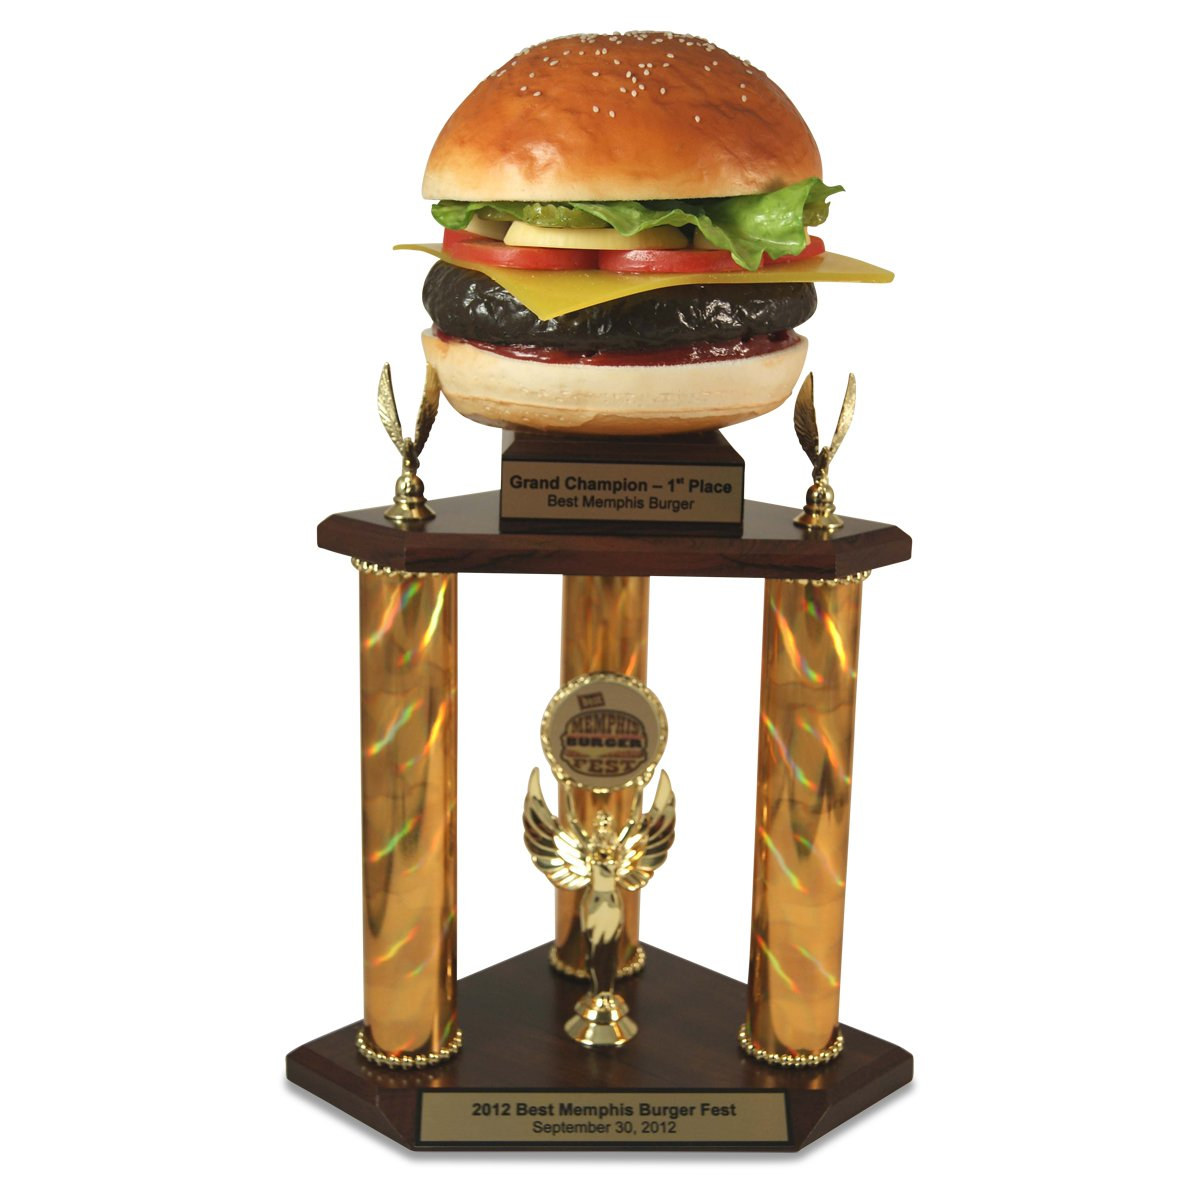 GiantバーガーTrophy – BestバーガーTrophy、ハンバーガーAwards Far、Cheeseburger Eating Contestトロフィー、Cheeseburger Out CookオフTrophy by by Far Out Awards B07BV788GM, 天天ストア:9b3b7afb --- acee.org.ar